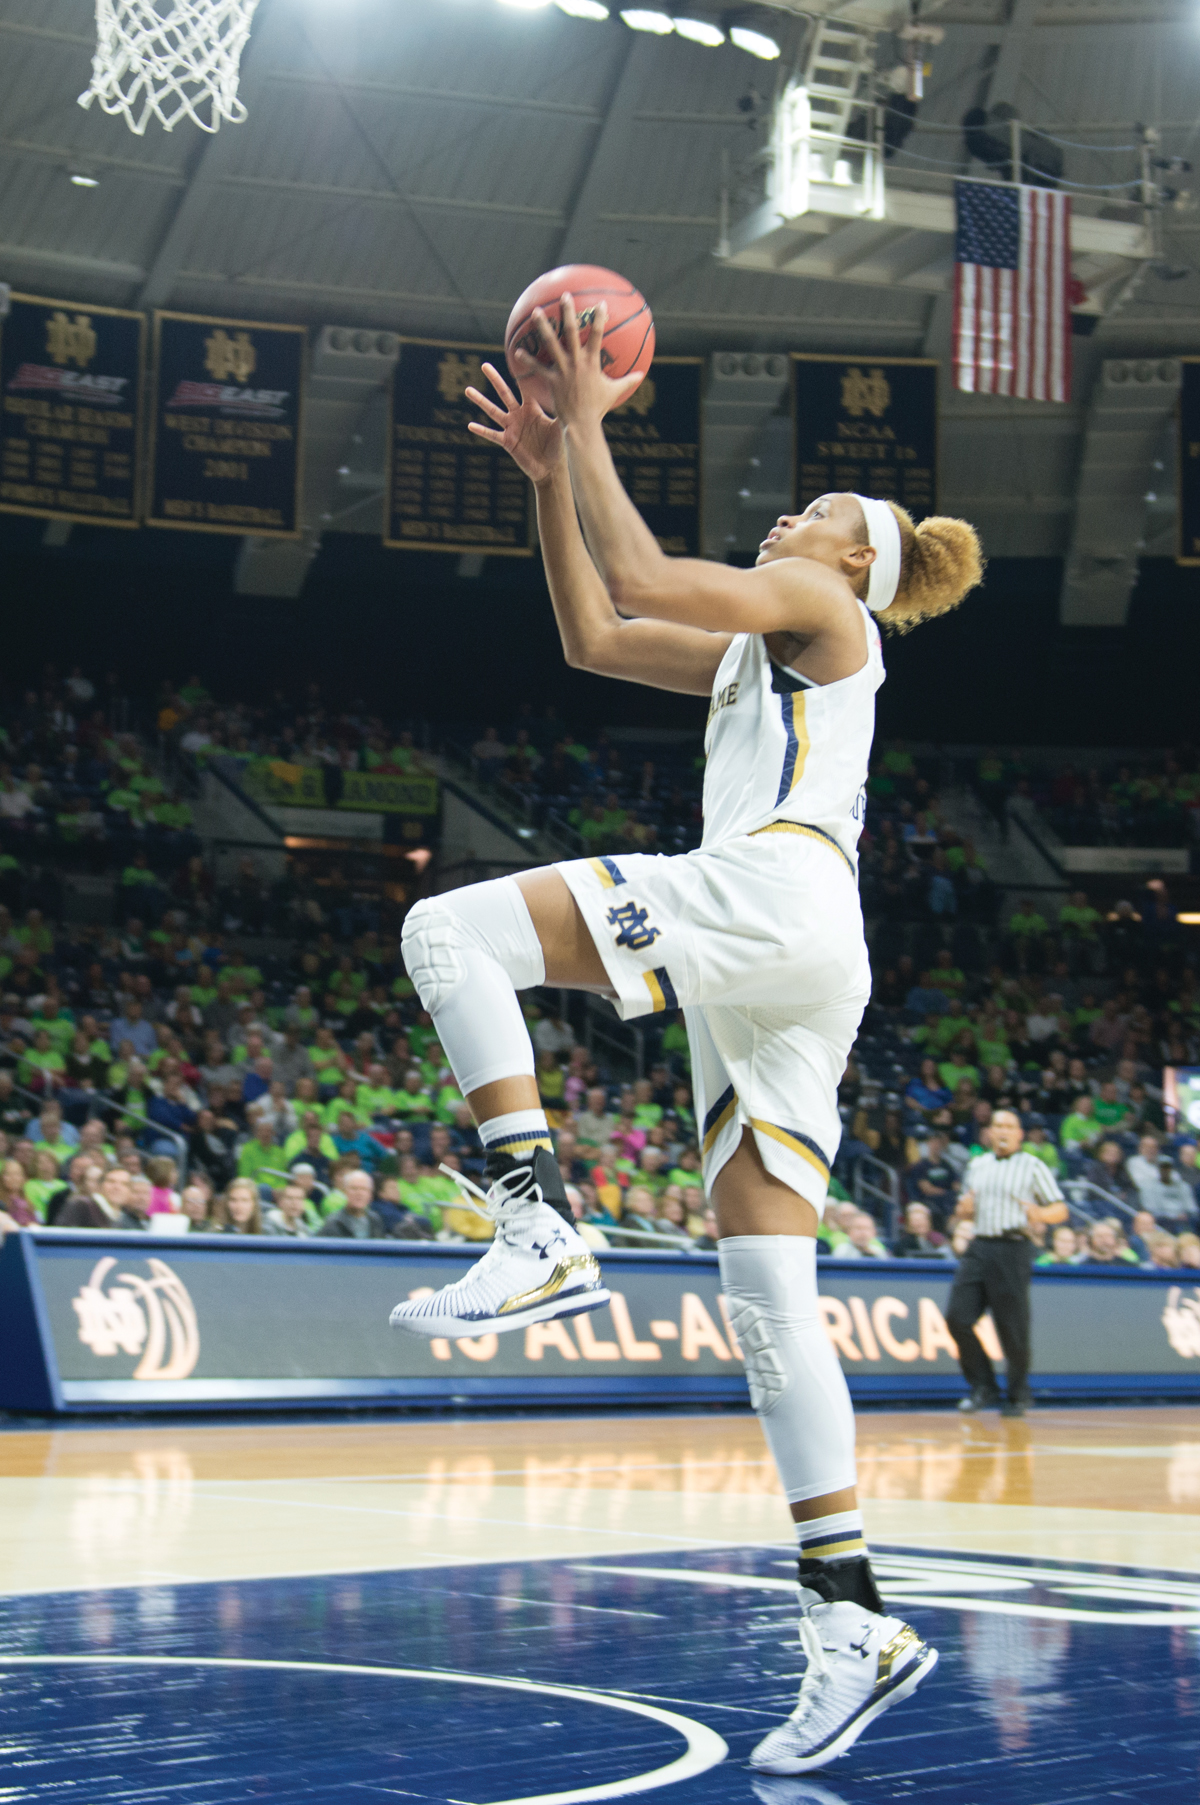 Irish freshman forward Brianna Turner during Notre Dame's 104-29 win over Holy Cross on Nov. 23 at Purcell Pavilion.